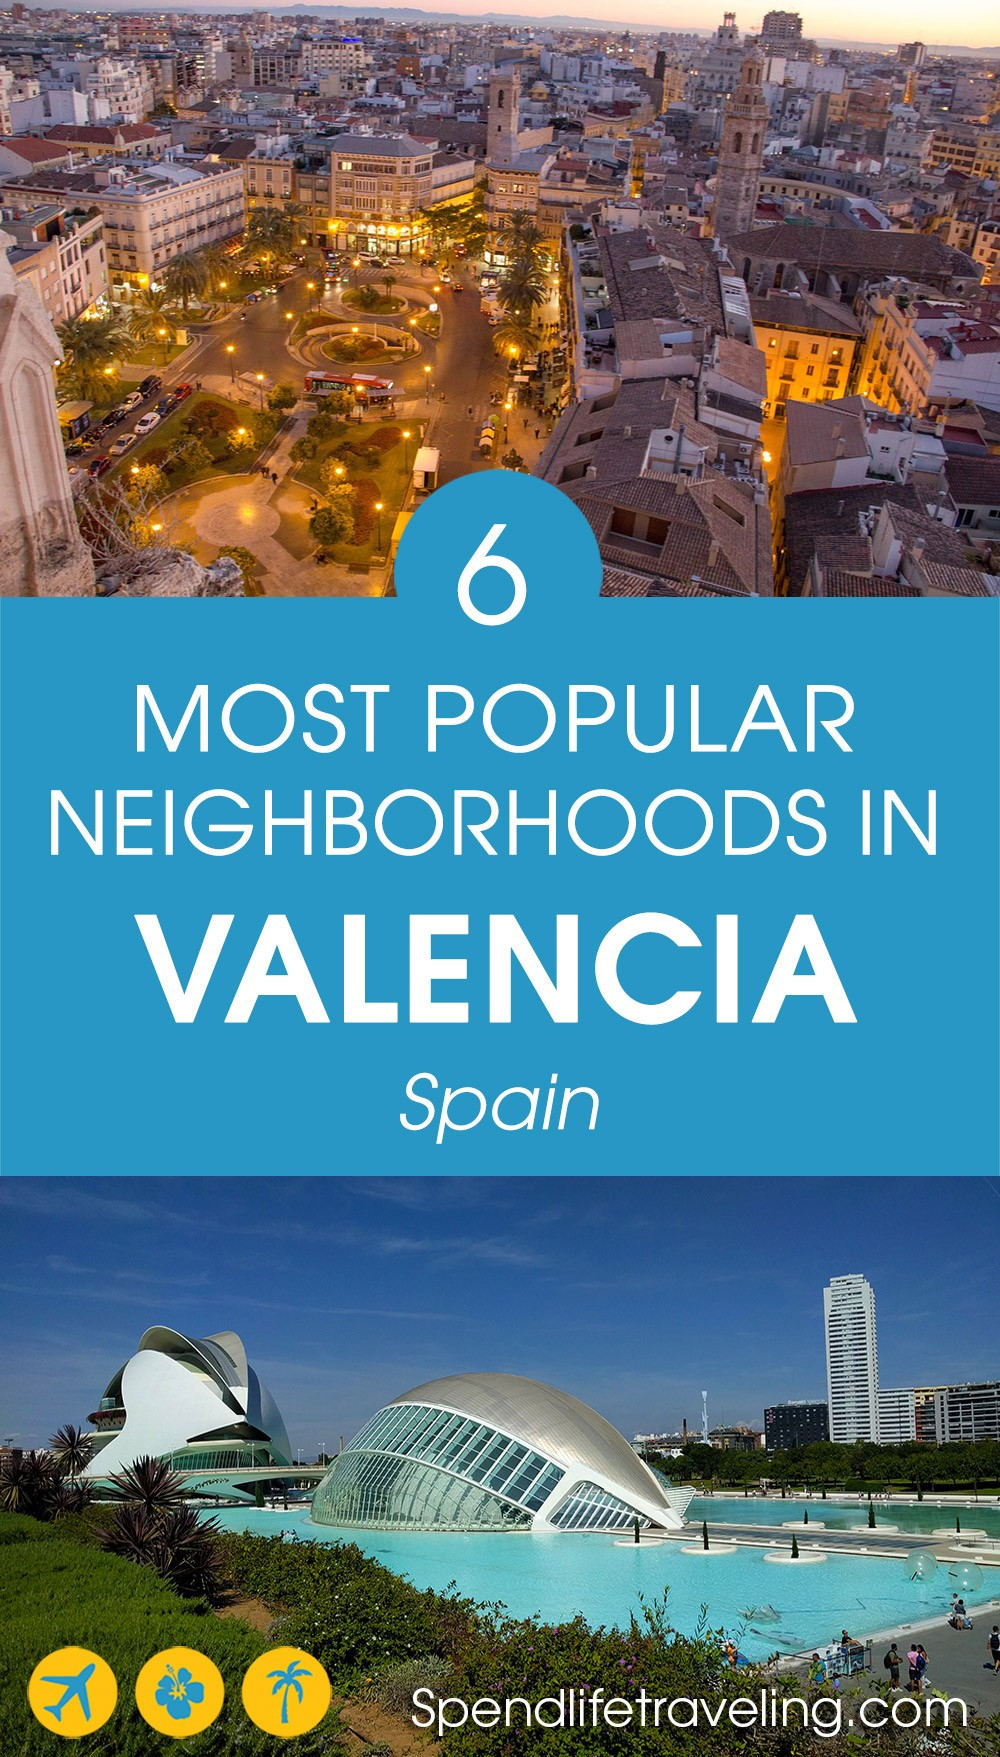 the most popular neighborhoods in Valencia, Spain